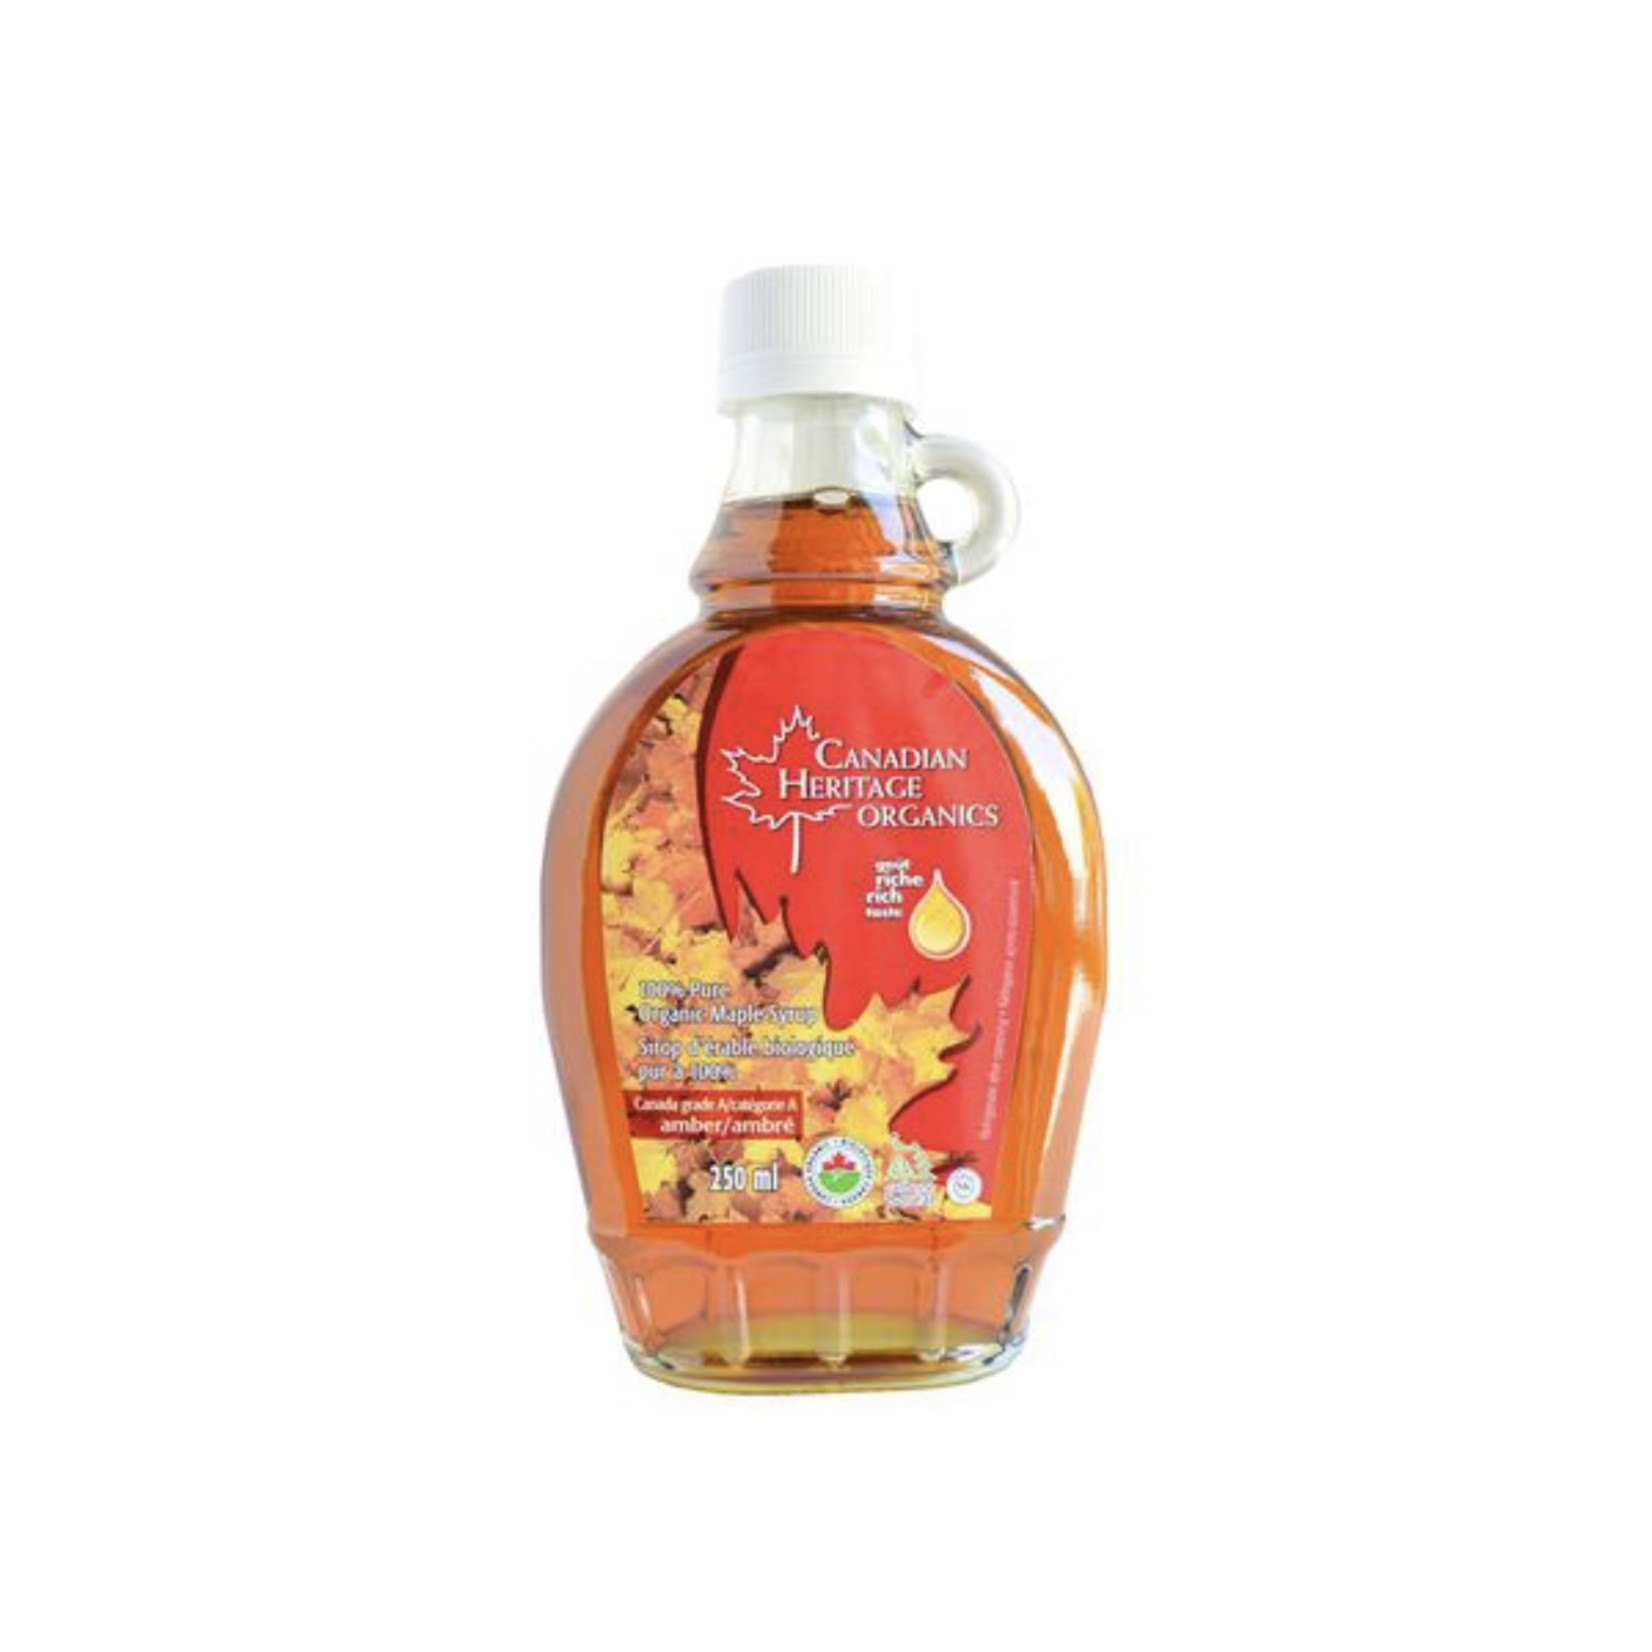 Canadian Heritage Organics Canadian Heritage 100% Pure Amber Maple Syrup